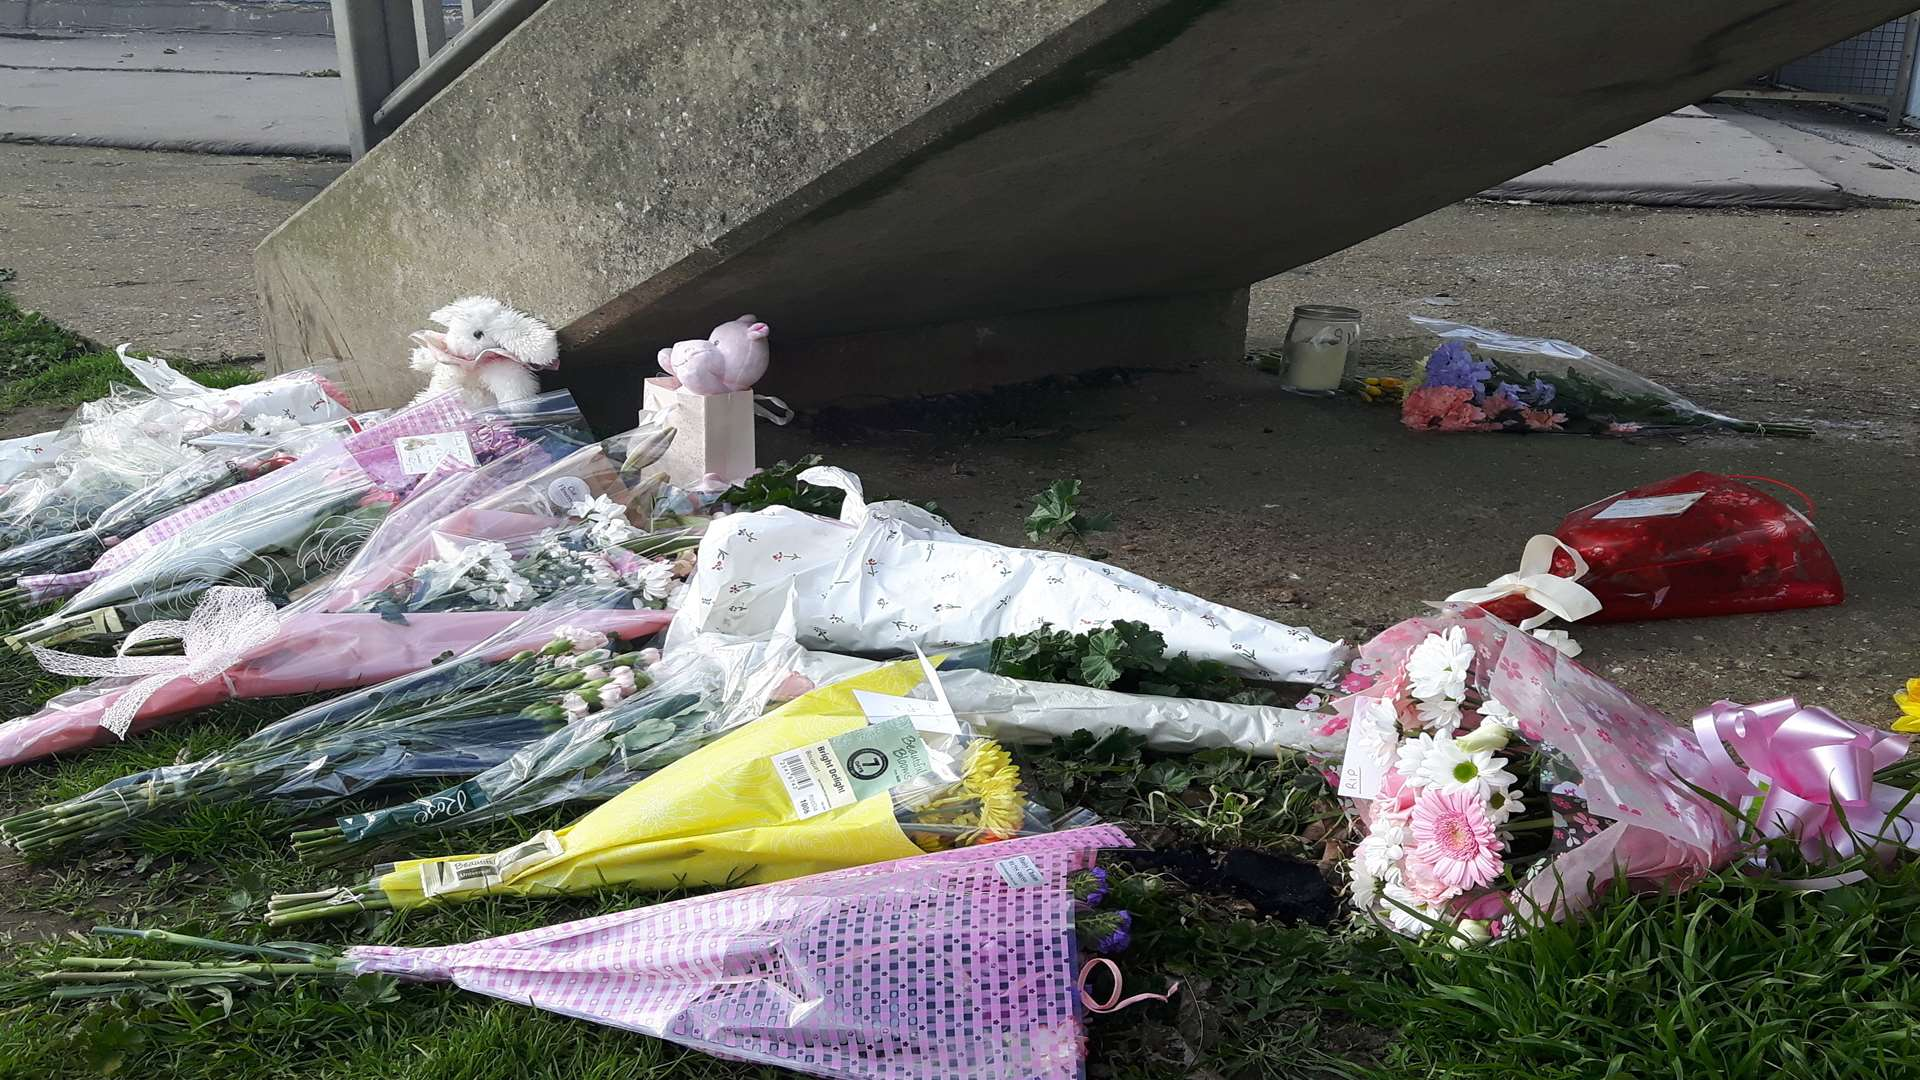 Flowers, candles and teddy bears were left where the body of the baby girl was discovered